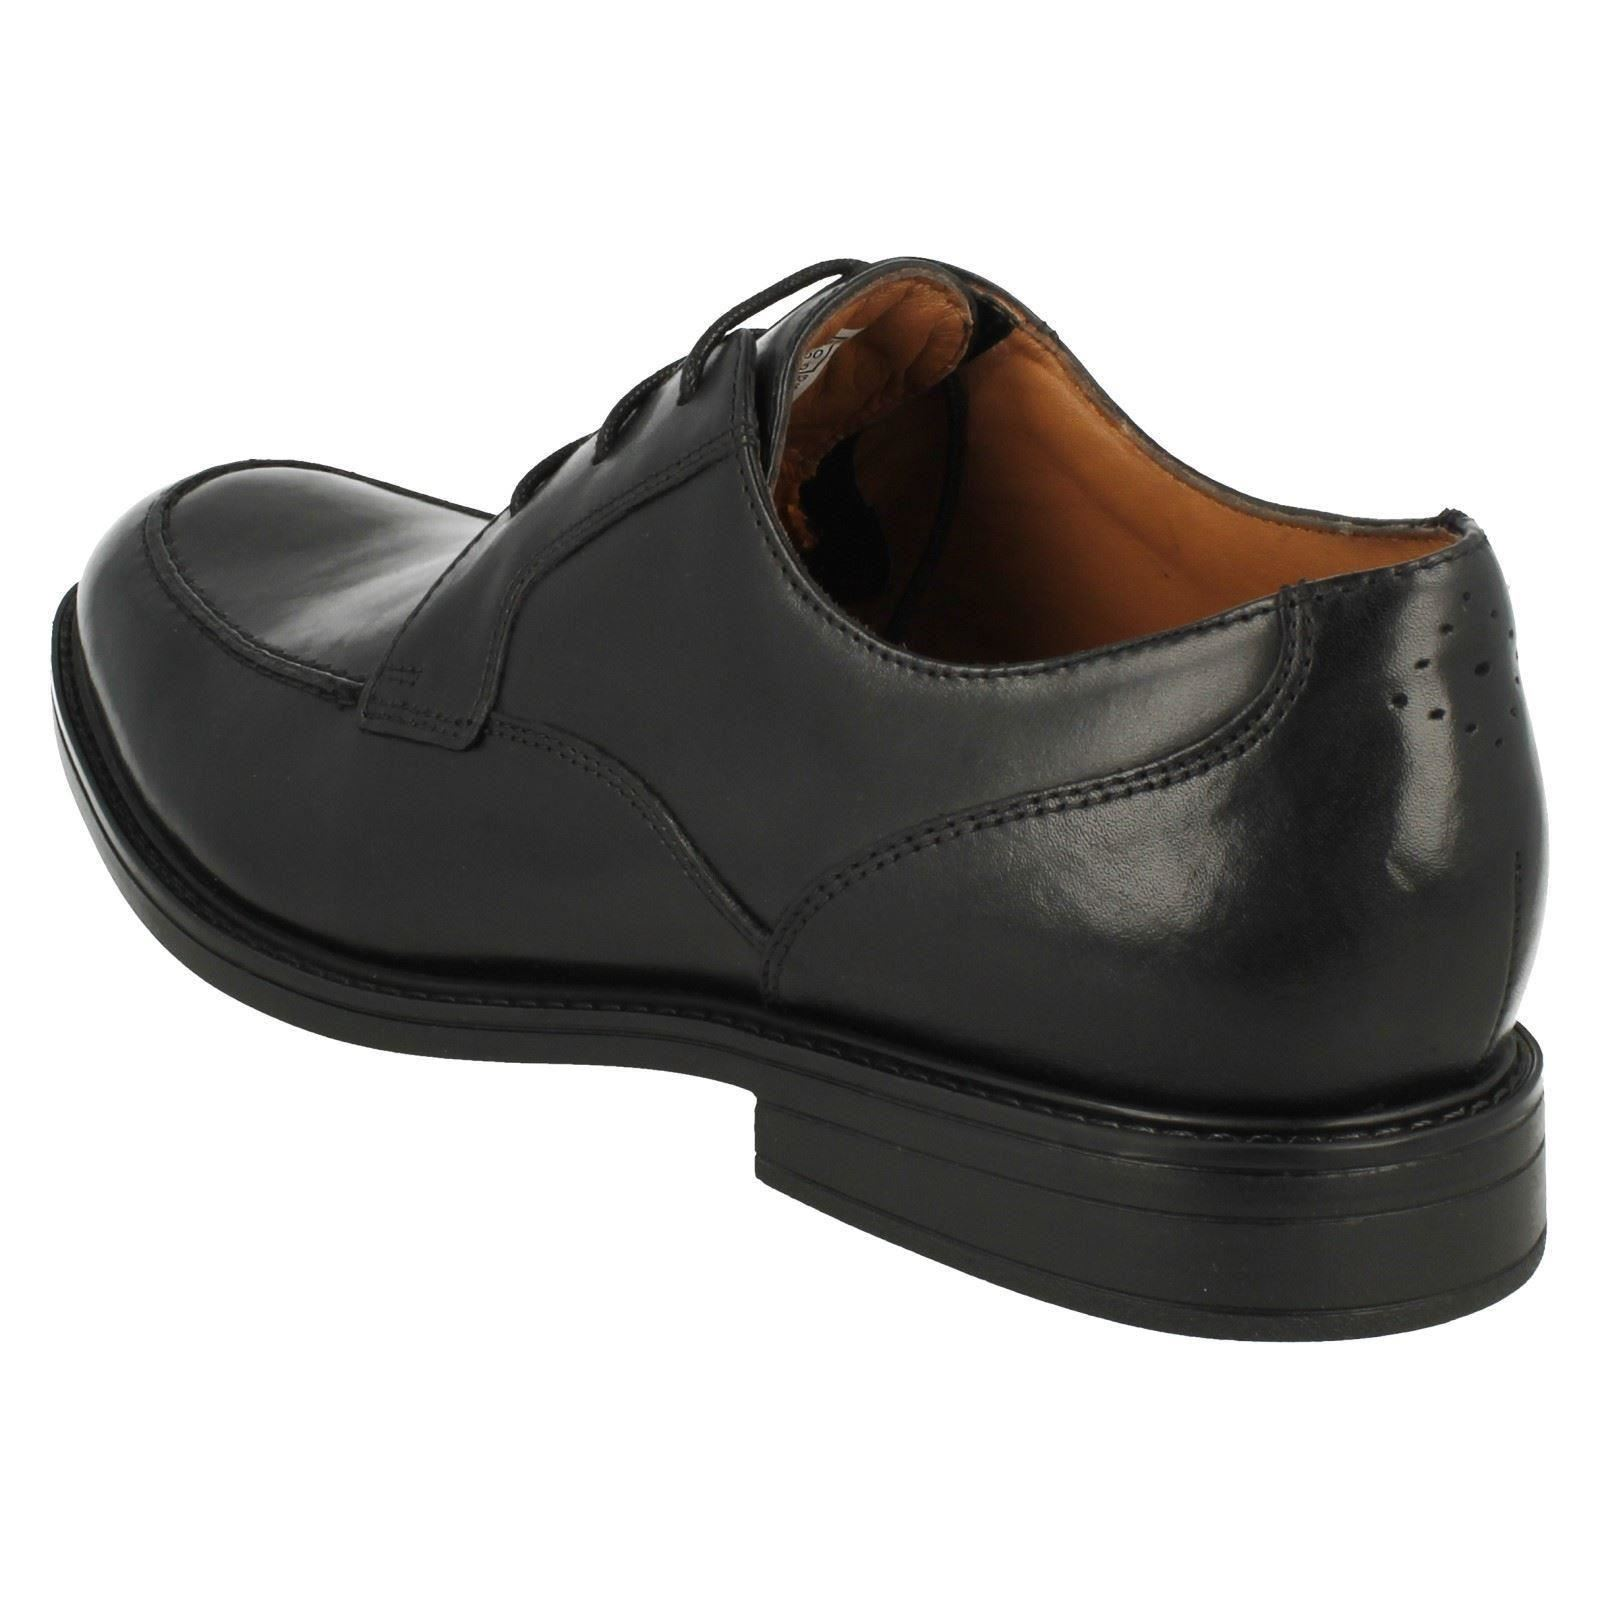 Beckfield Clarks zapatos negro formales delantal para hombre 4awaqFP